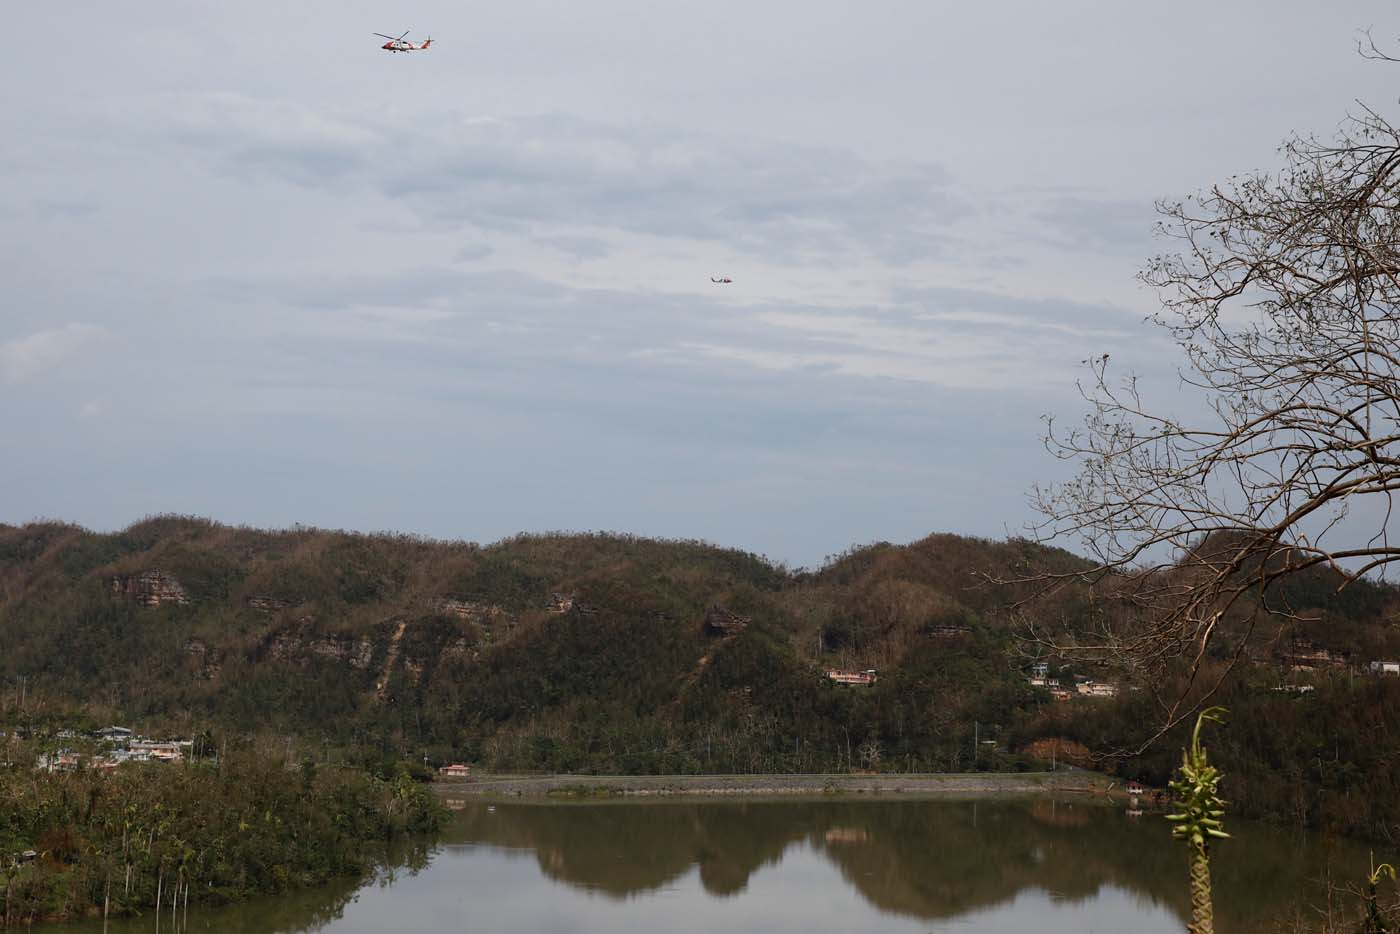 U.S. Coast Guard helicopters fly over the dam at the Guajataca lake after the area was hit by Hurricane Maria in Guajataca, Puerto Rico September 23, 2017. REUTERS/Carlos Garcia Rawlins